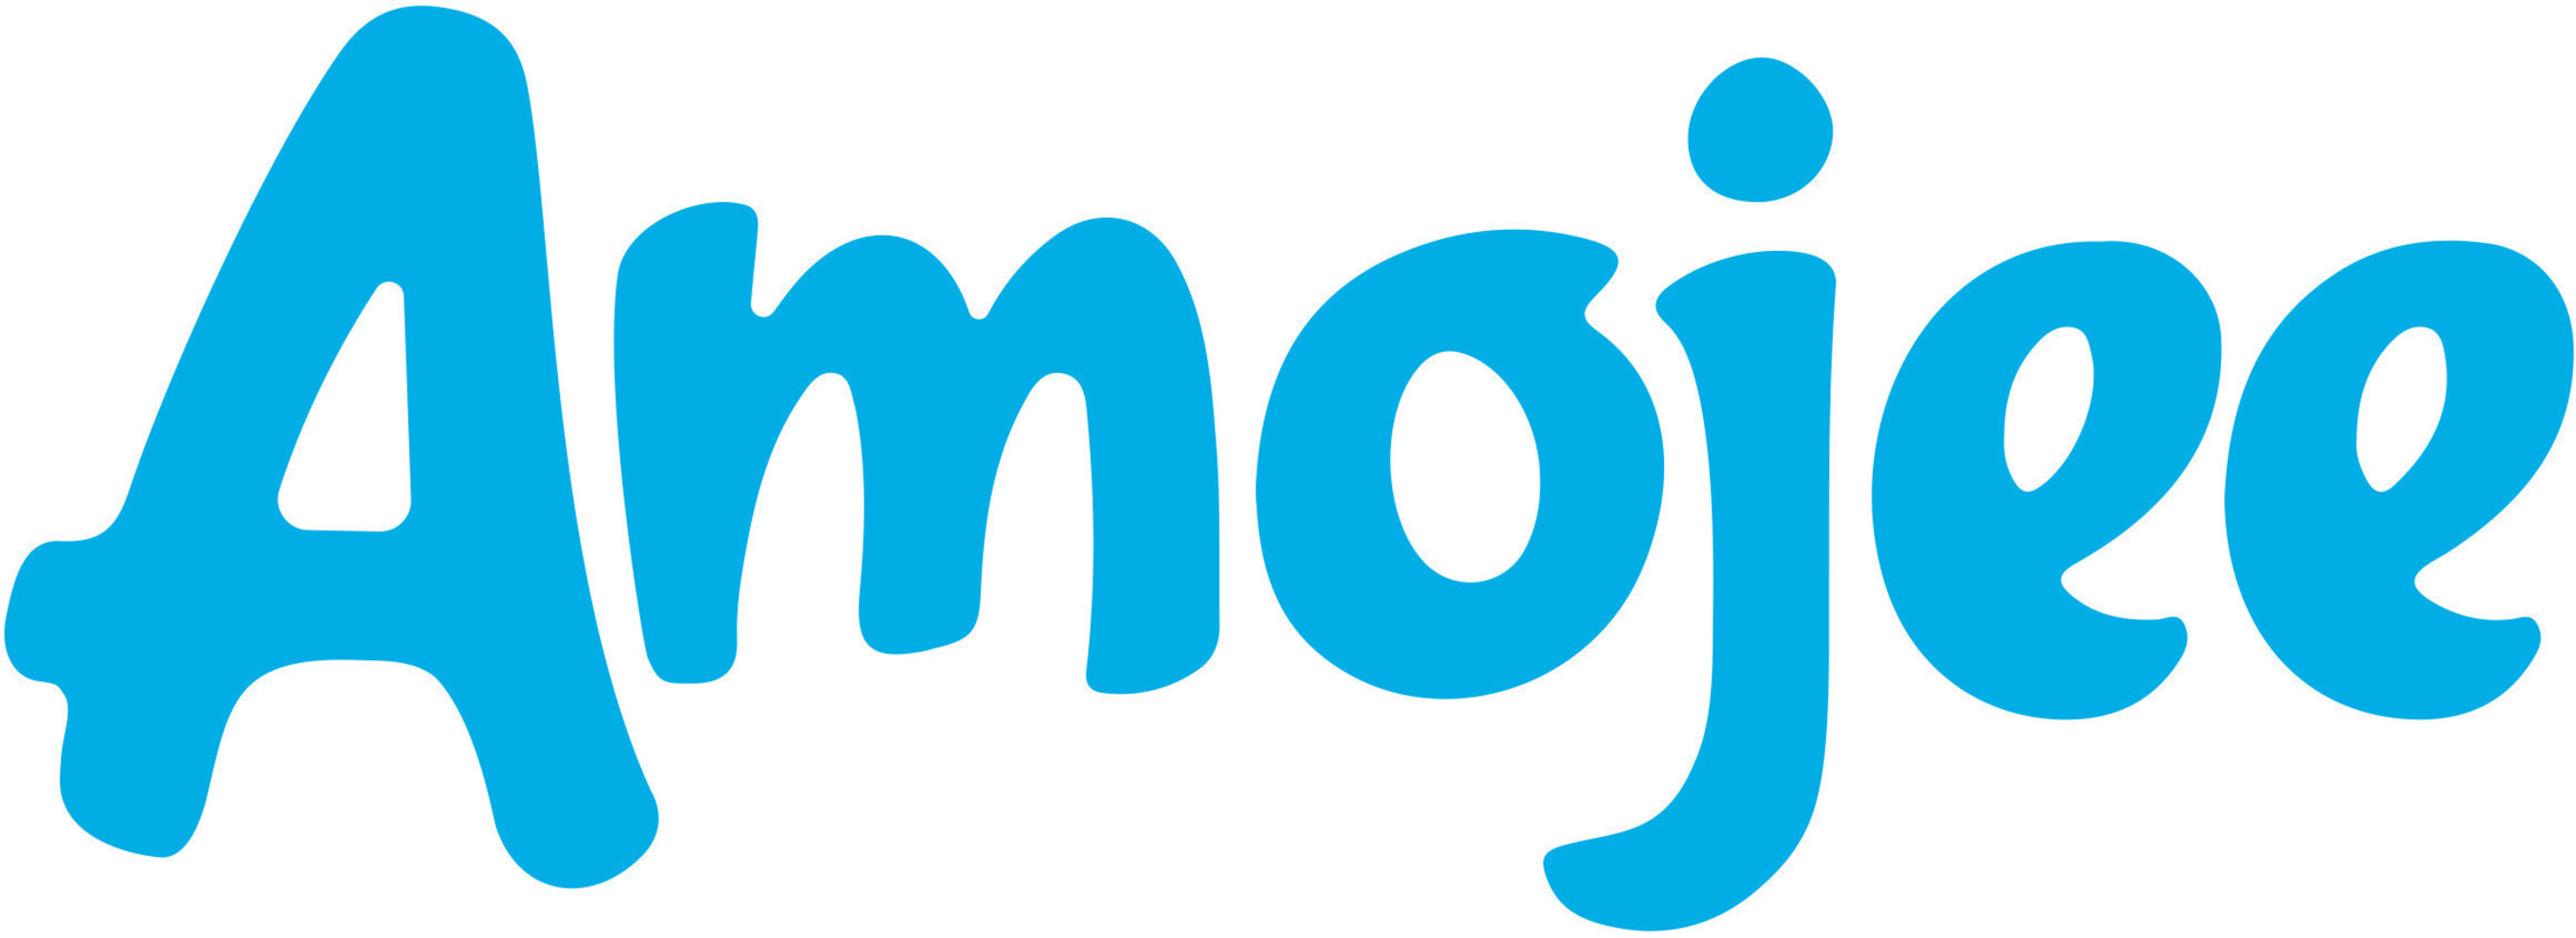 Amojee App! Now integrated with iOS10! Check it out in iMessage or download today for full version!